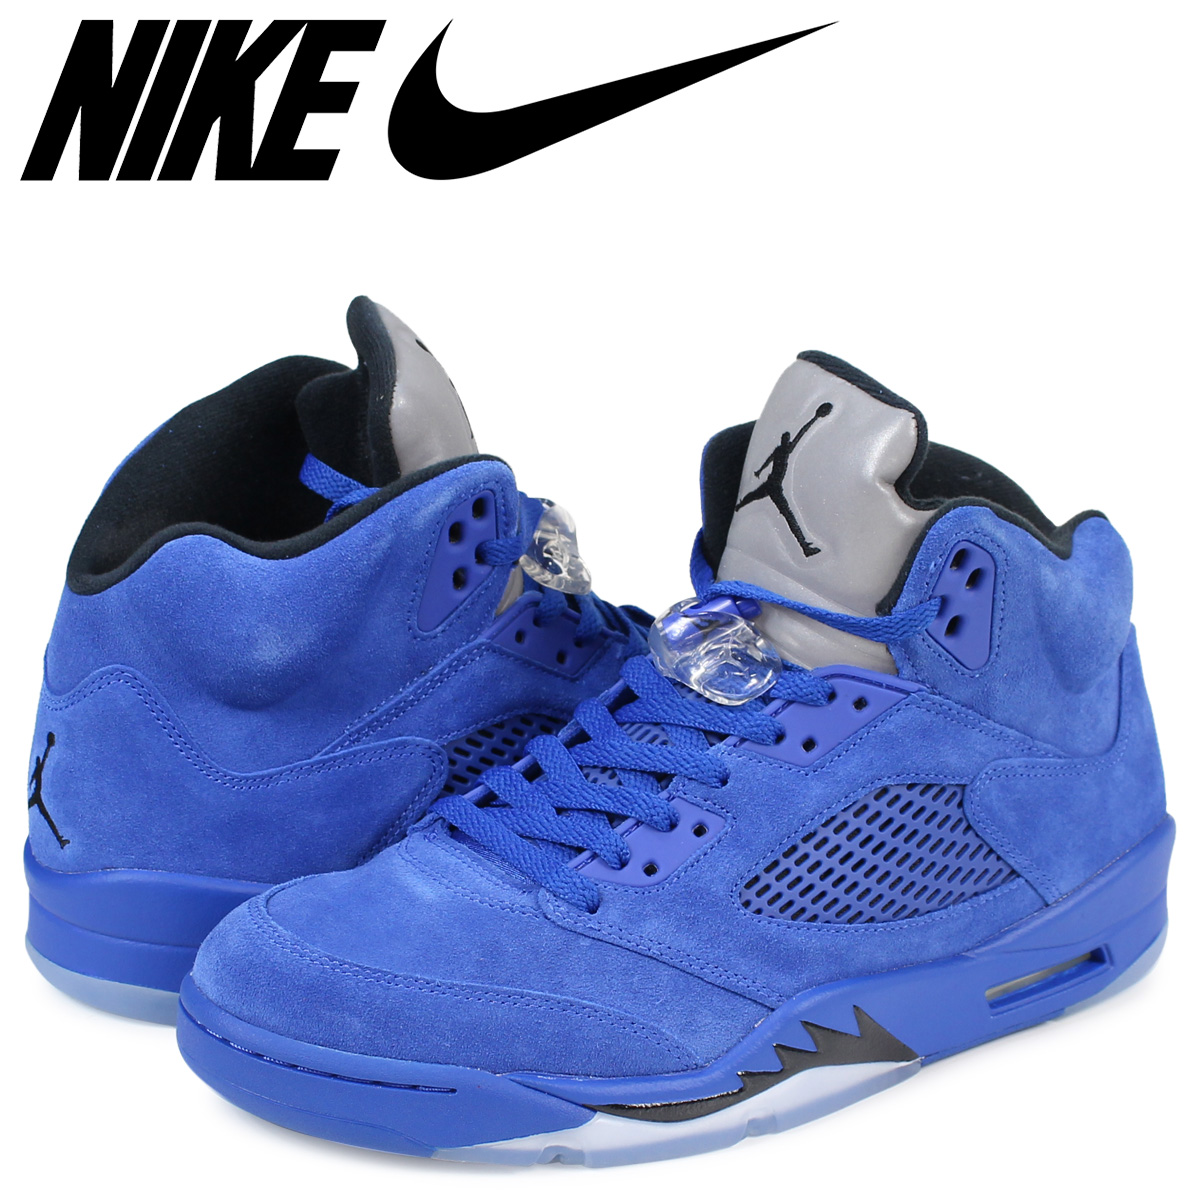 separation shoes 76b1e b8584 NIKE AIR JORDAN 5 RETRO Nike Air Jordan 5 nostalgic sneakers 136,027-401  men's shoes blue [1711]